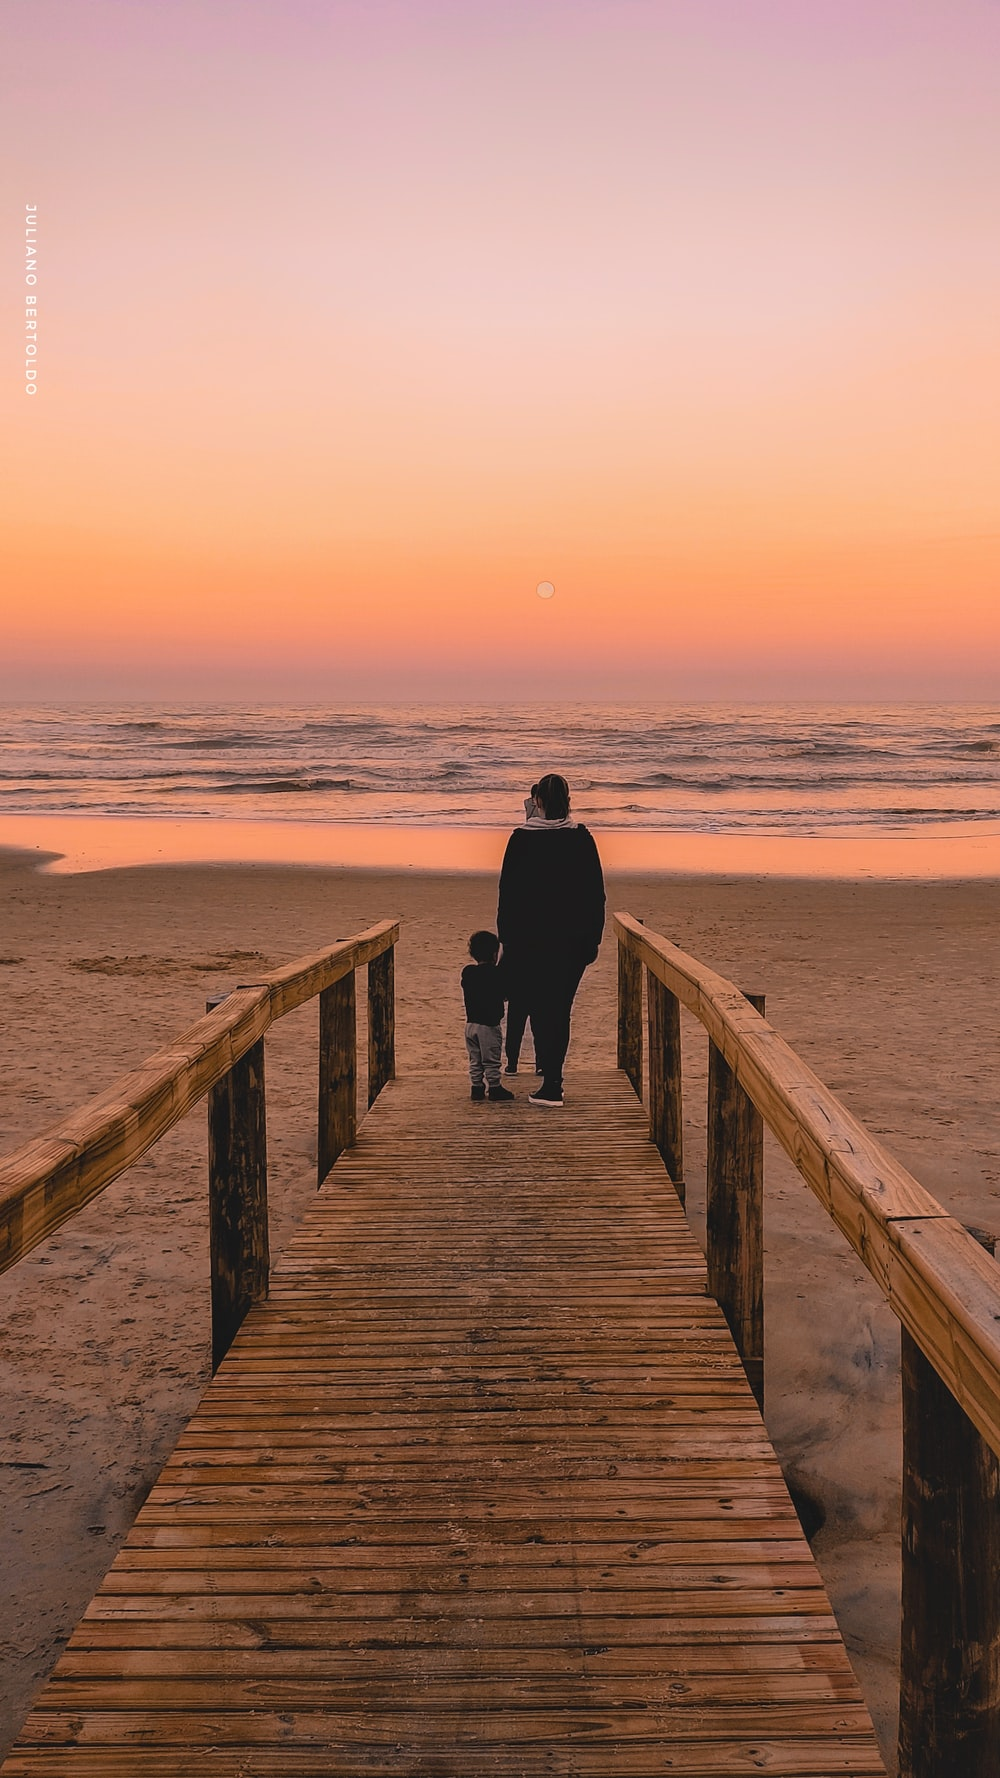 man in black jacket standing on brown wooden dock during sunset